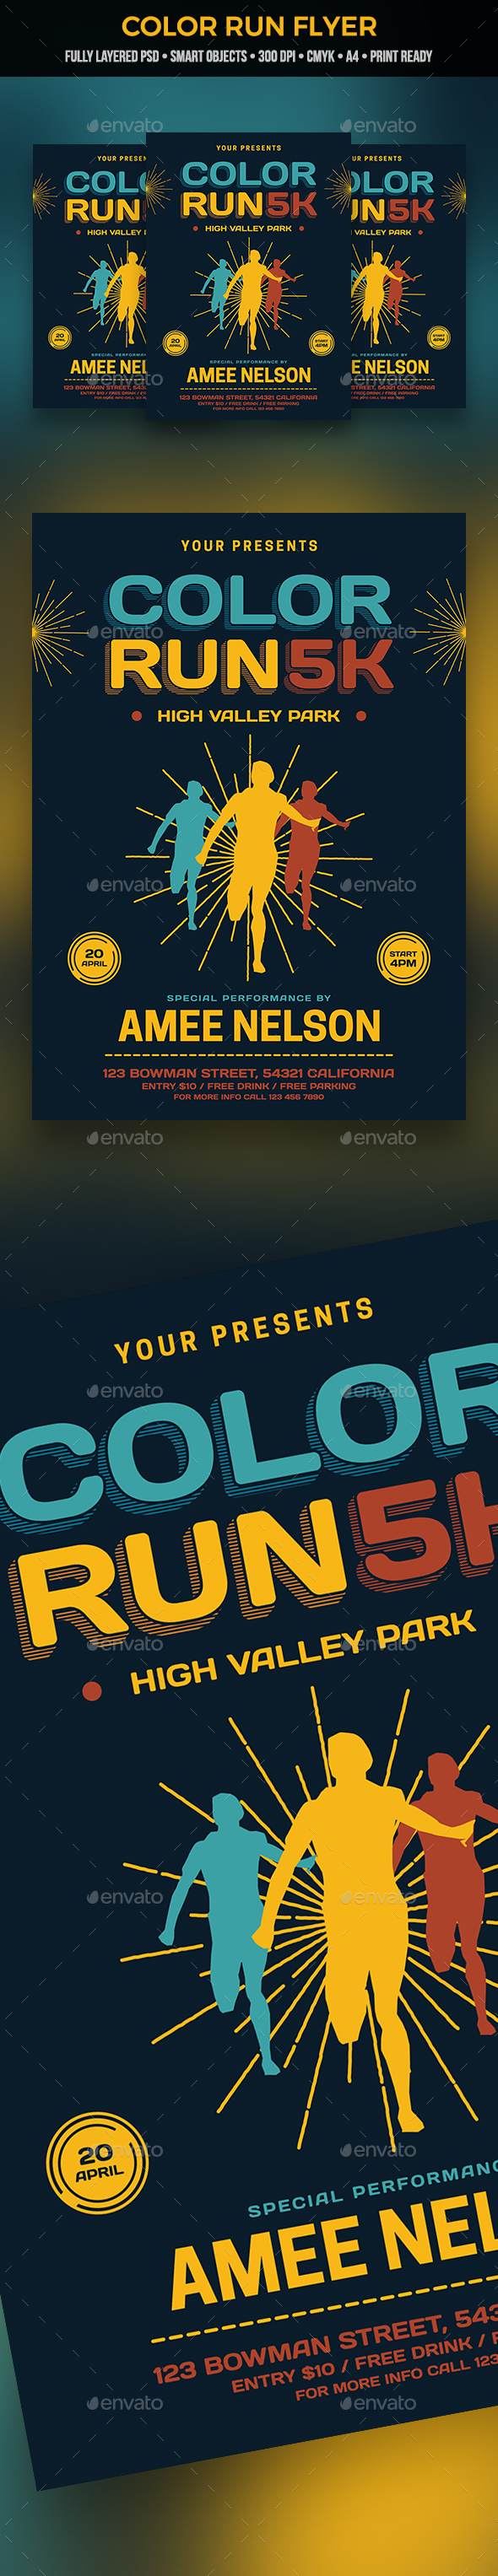 Color Run Flyer - Sports Events